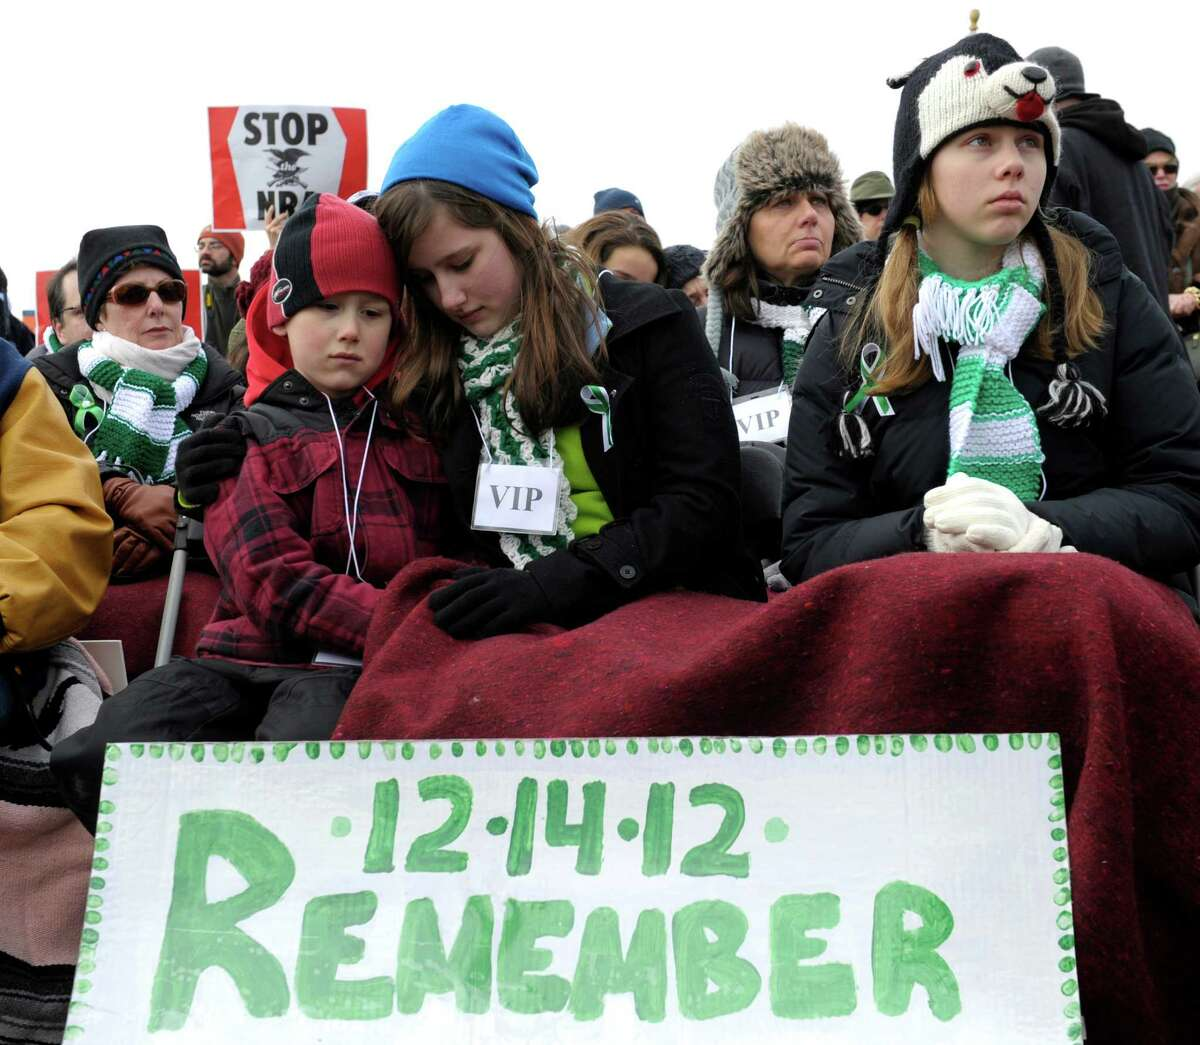 People listens to speaker during a rally against gun violence near the Washington Monument in Washington, Thursday, Jan. 26, 2012. (AP Photo/Susan Walsh)